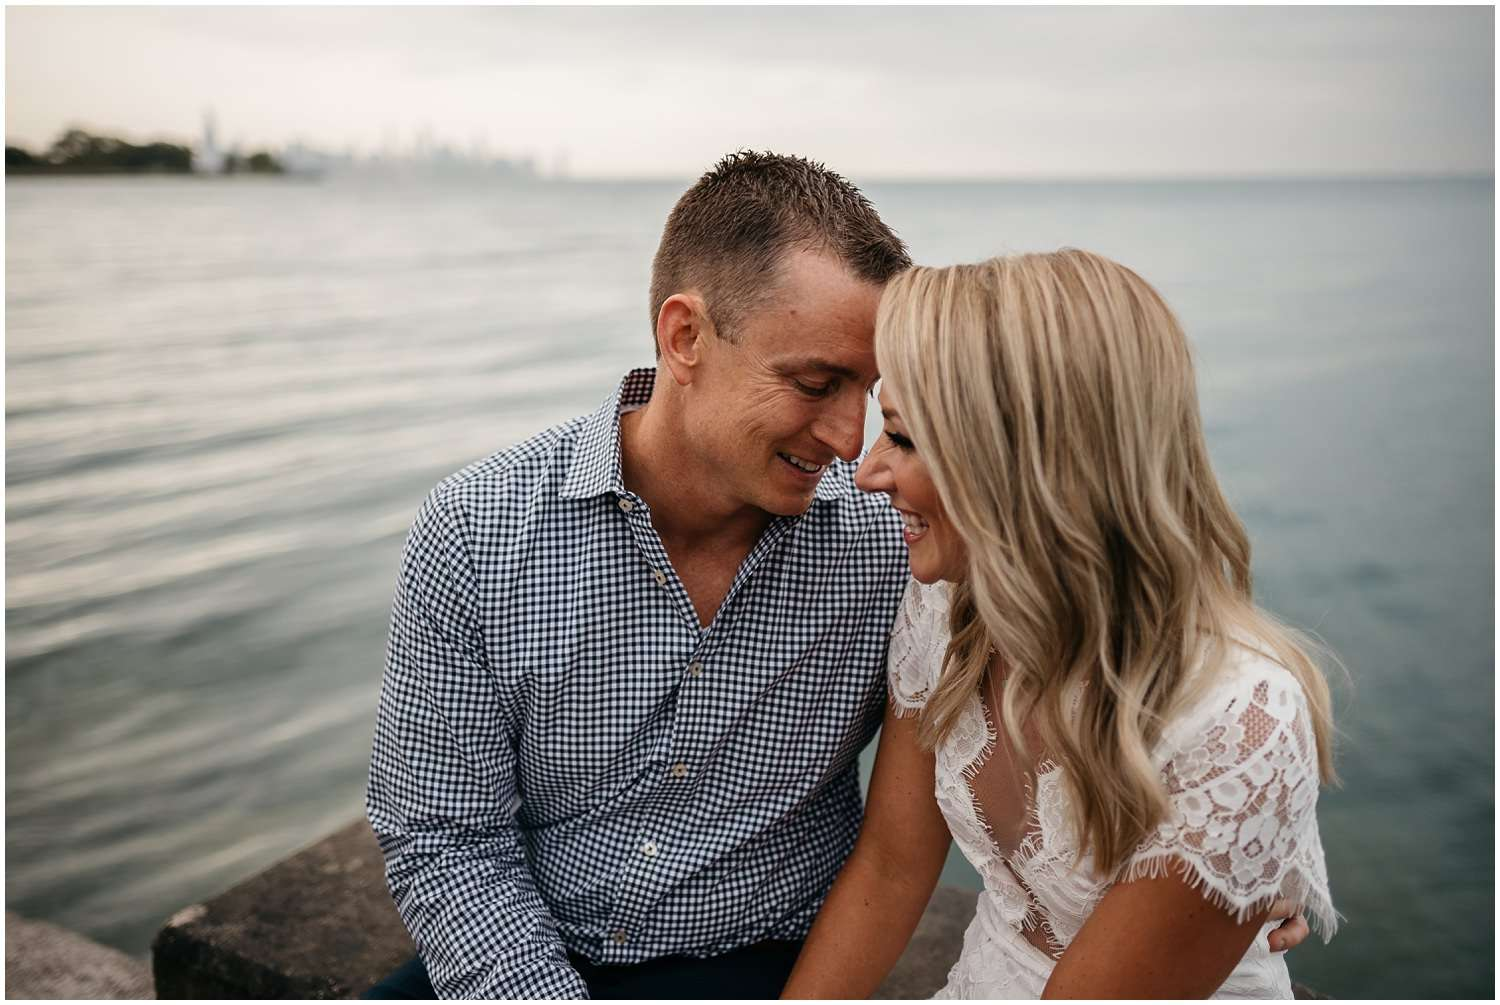 chicago engagement photographer, couples session, engagement session, engagement, promontory point, chicago, skyline, lake, lake michigan, sunset, illinois, northwest indiana, milwaukee, wisconsin